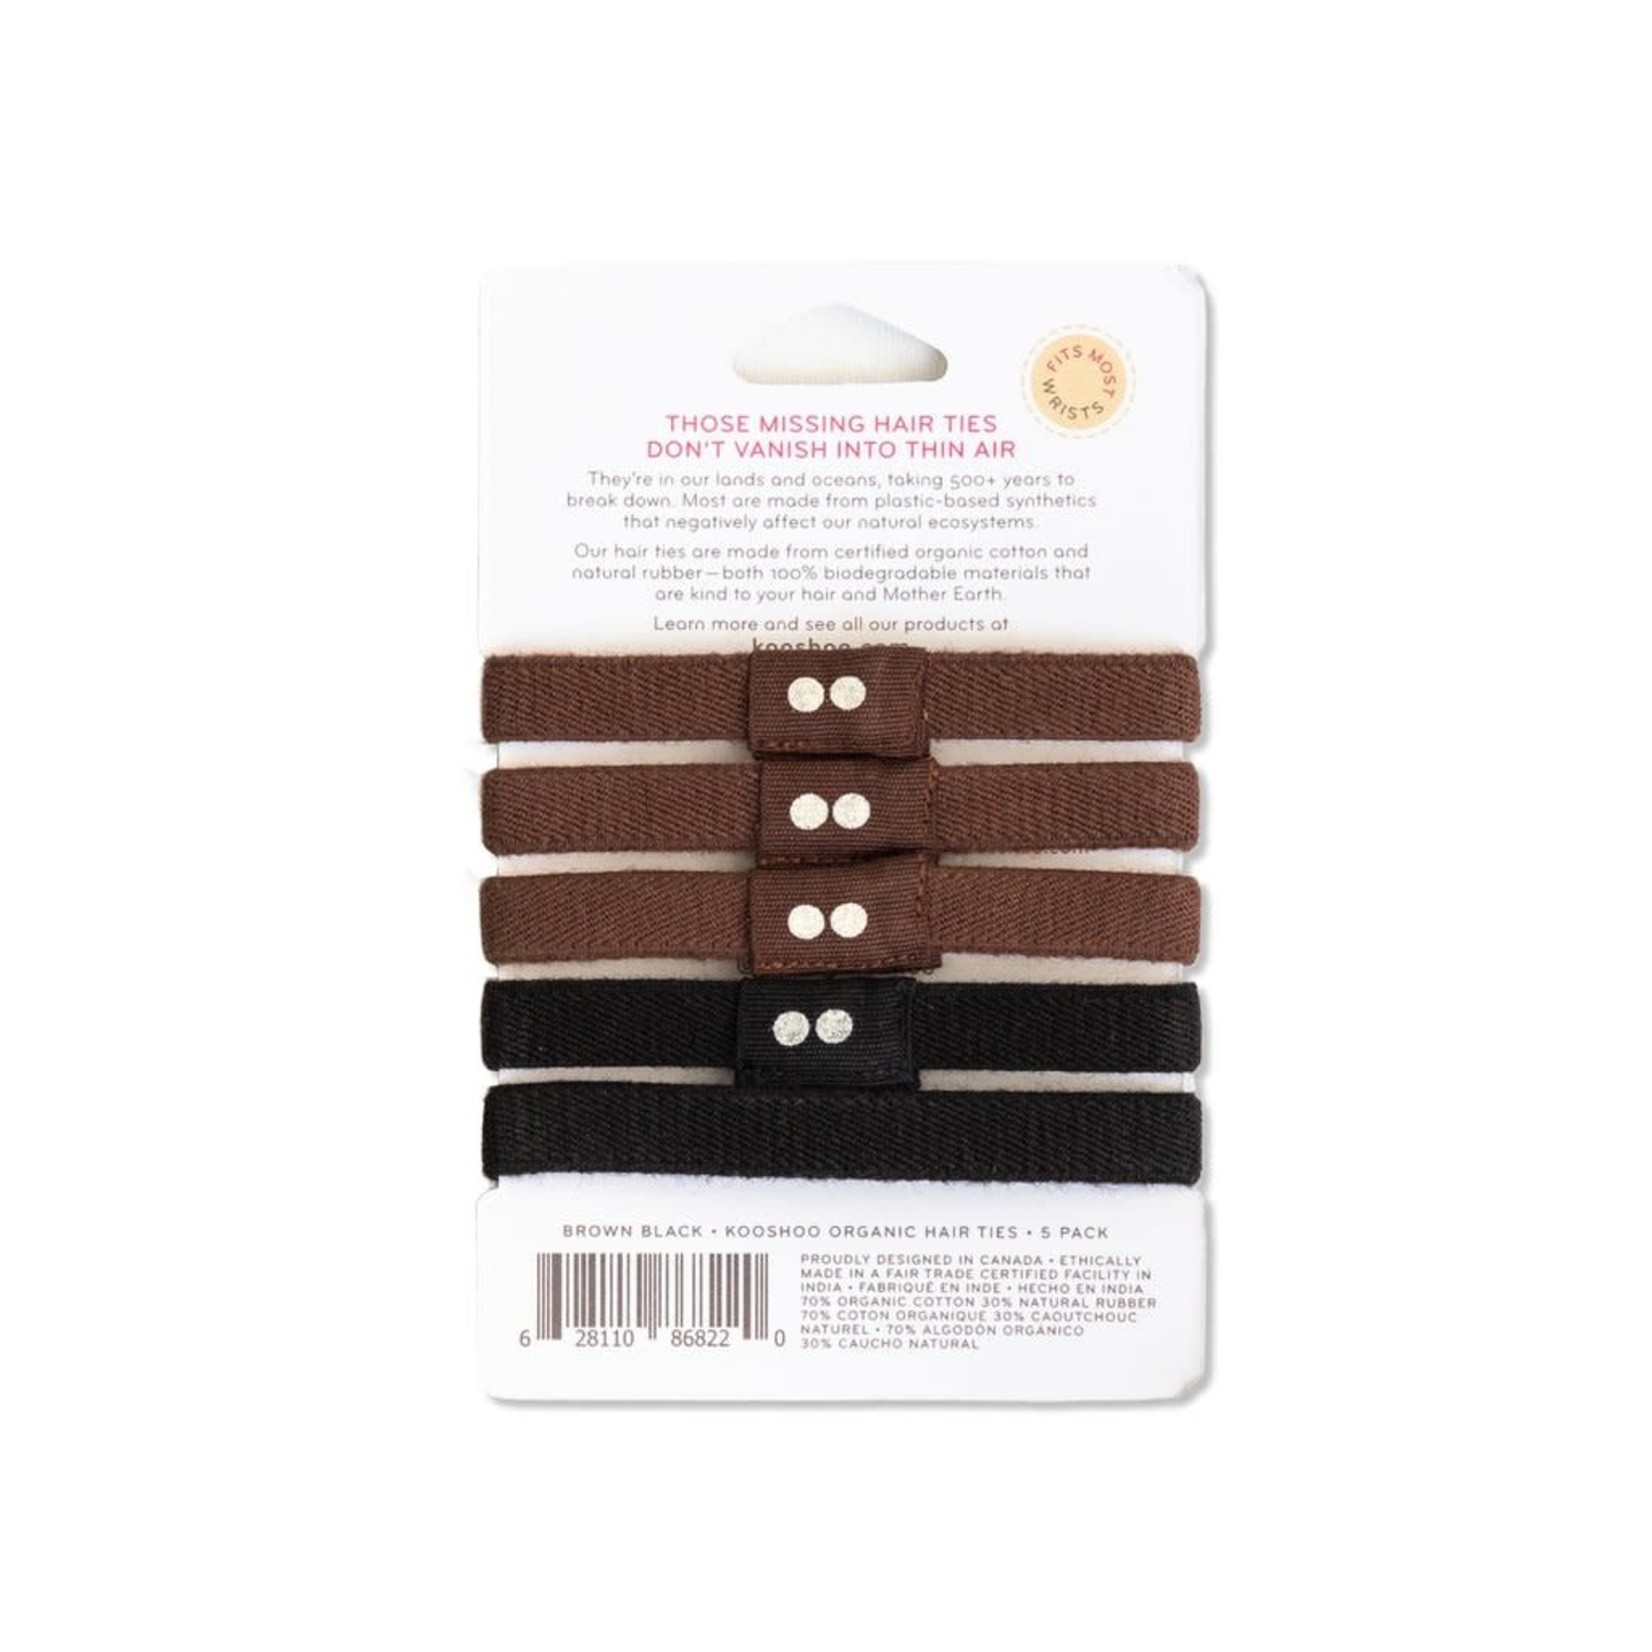 KOOSHOO Organic Hair Ties - Black Brown